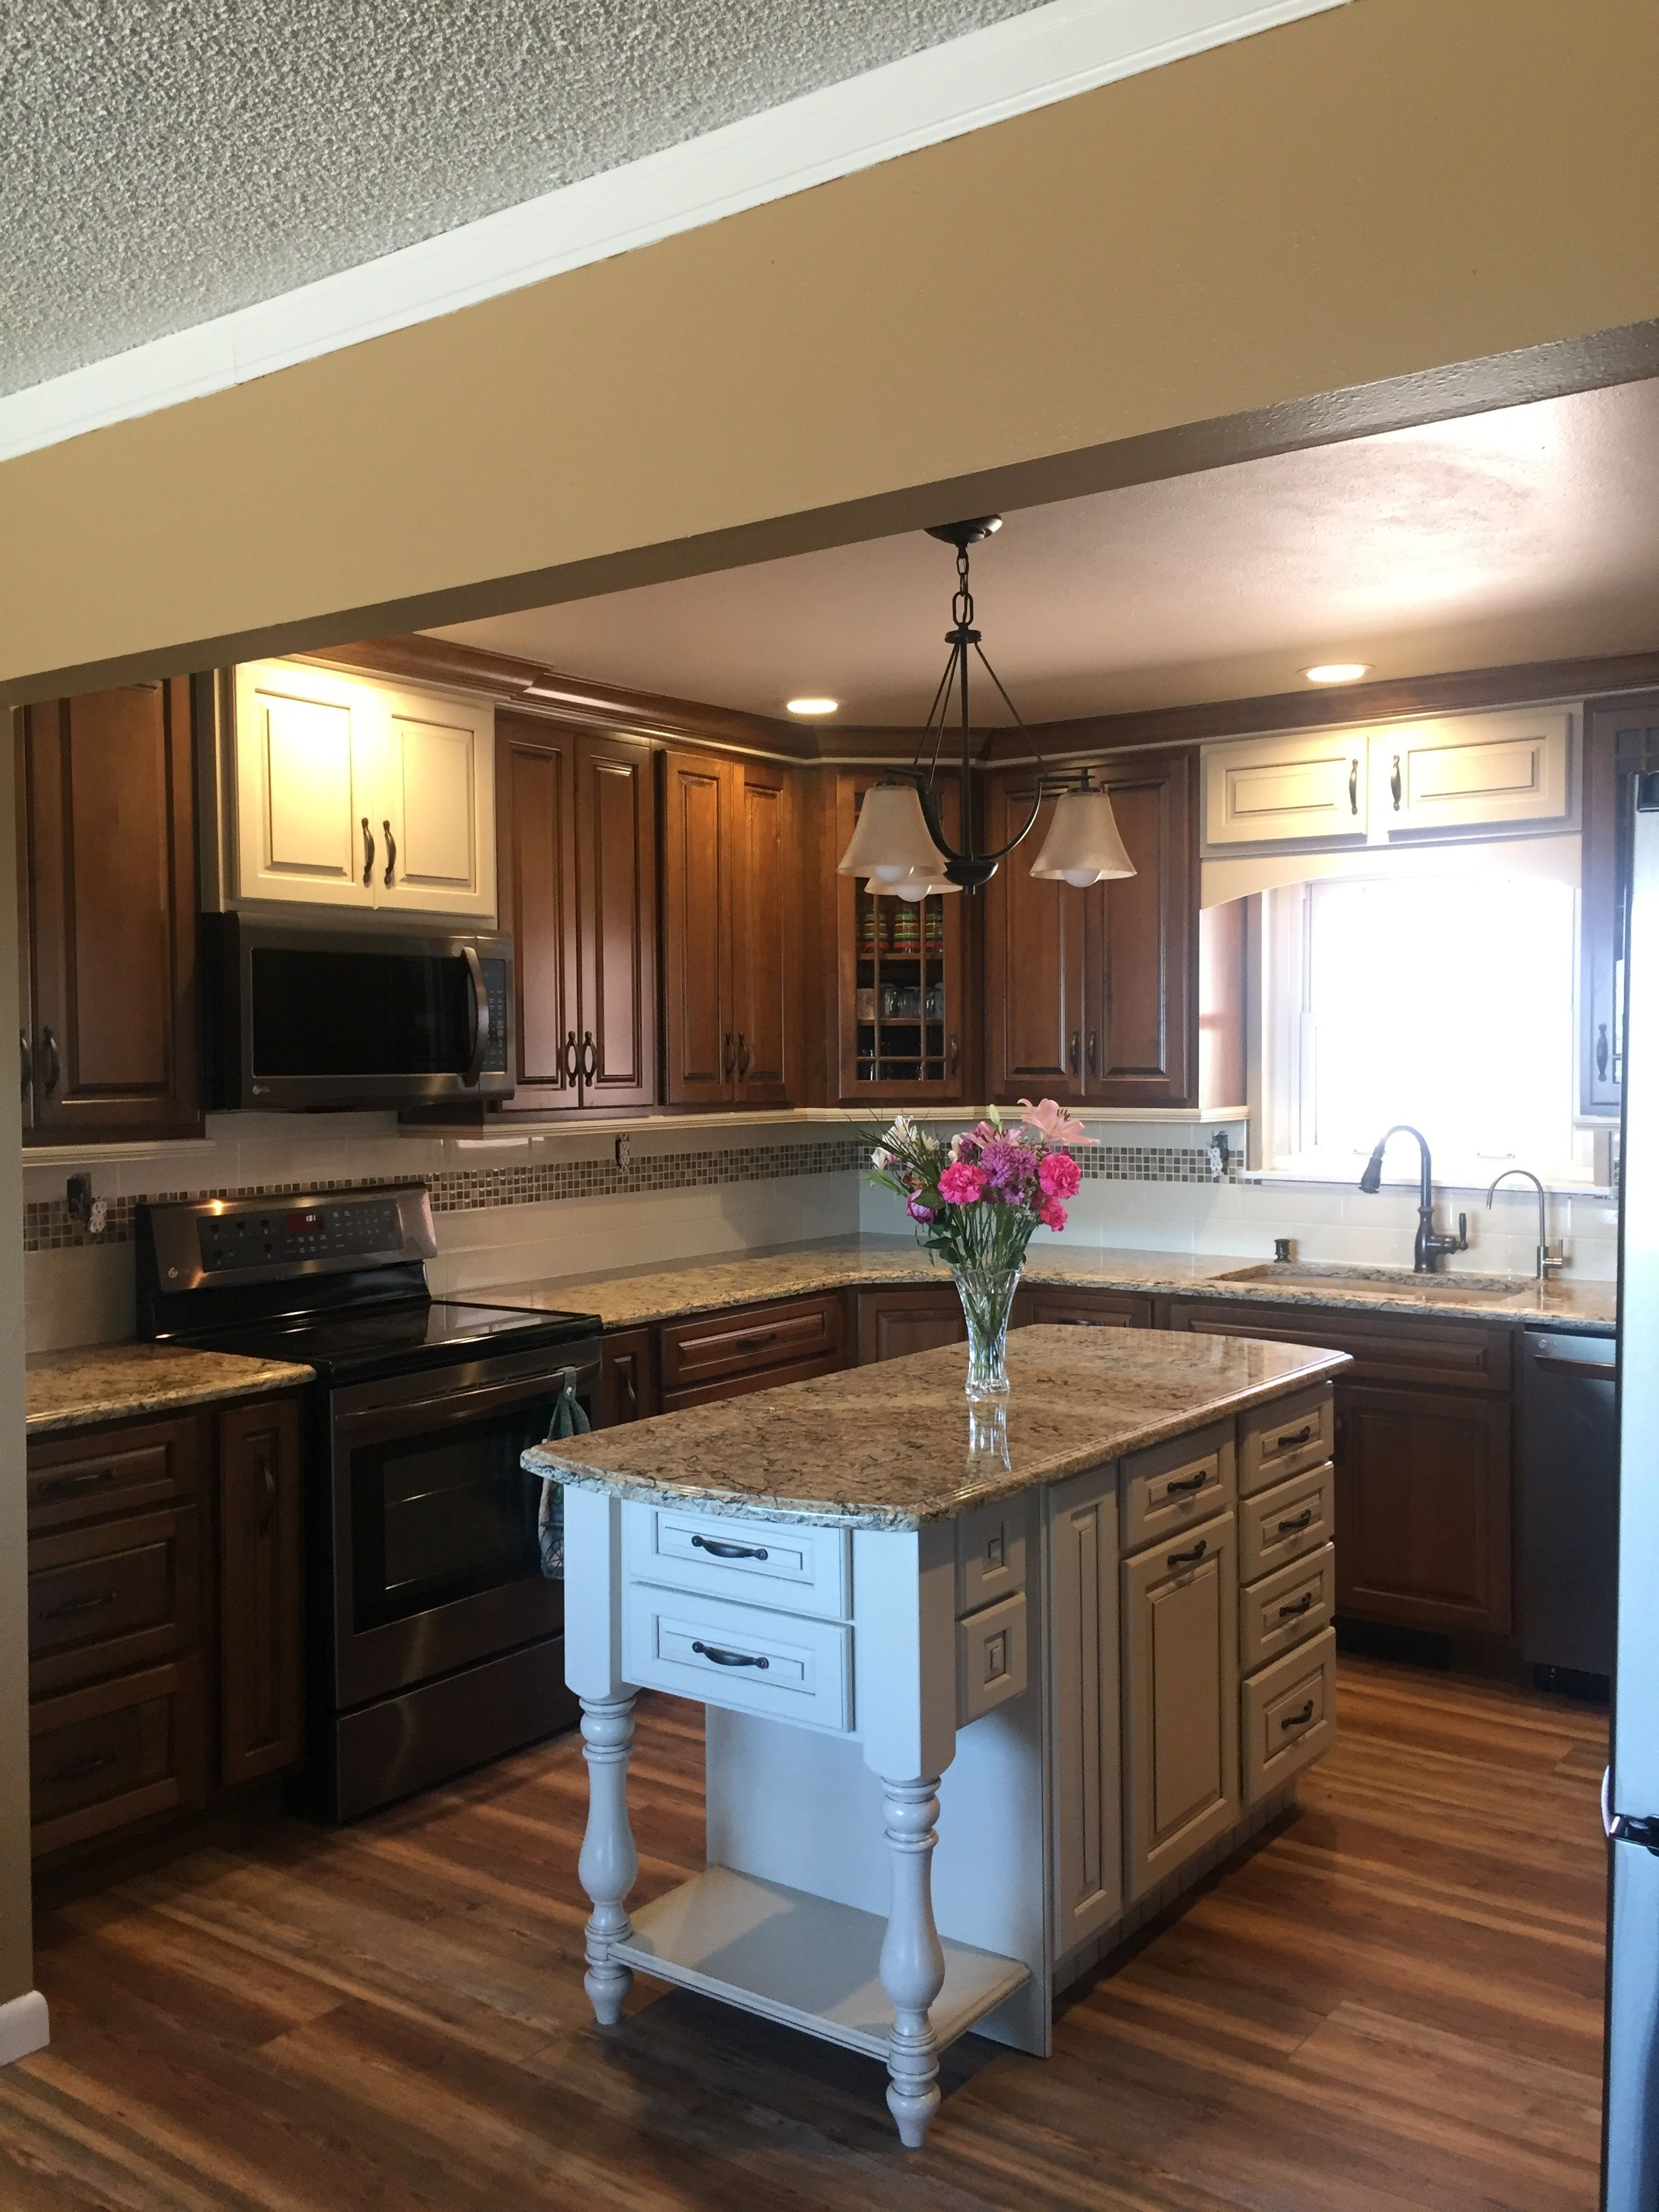 Beau Backsplash, Countertop, Cabinets, Closets, Fitted Wardrobes, Counter Top,  Kitchen Cabinets, Countertops, Sink